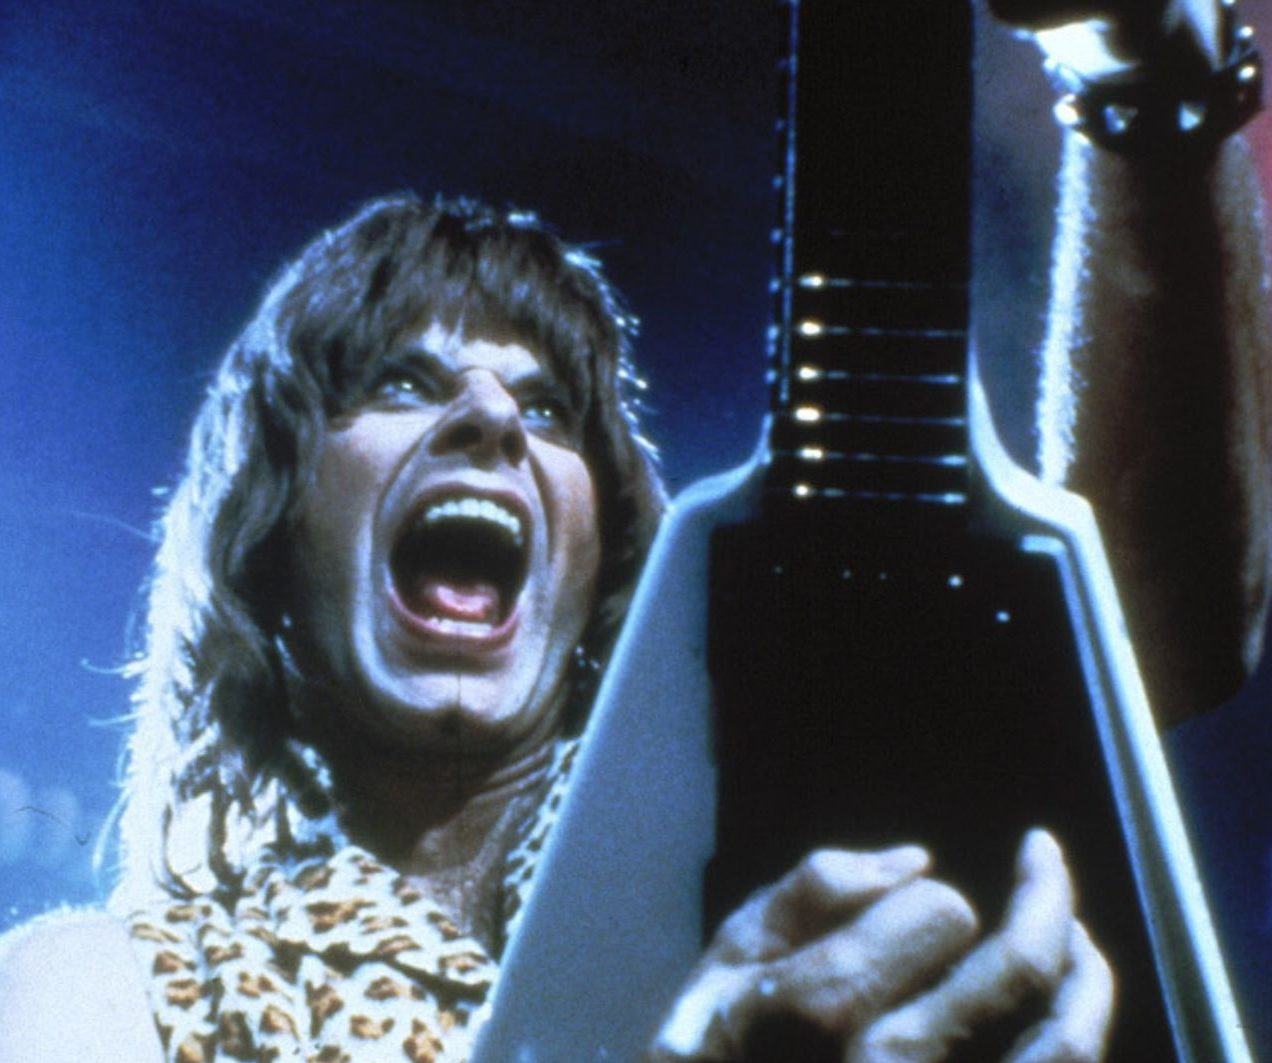 55369 mgm 0 e1605102027637 Tonight We're Gonna Rock You With 30 Facts About This Is Spinal Tap!